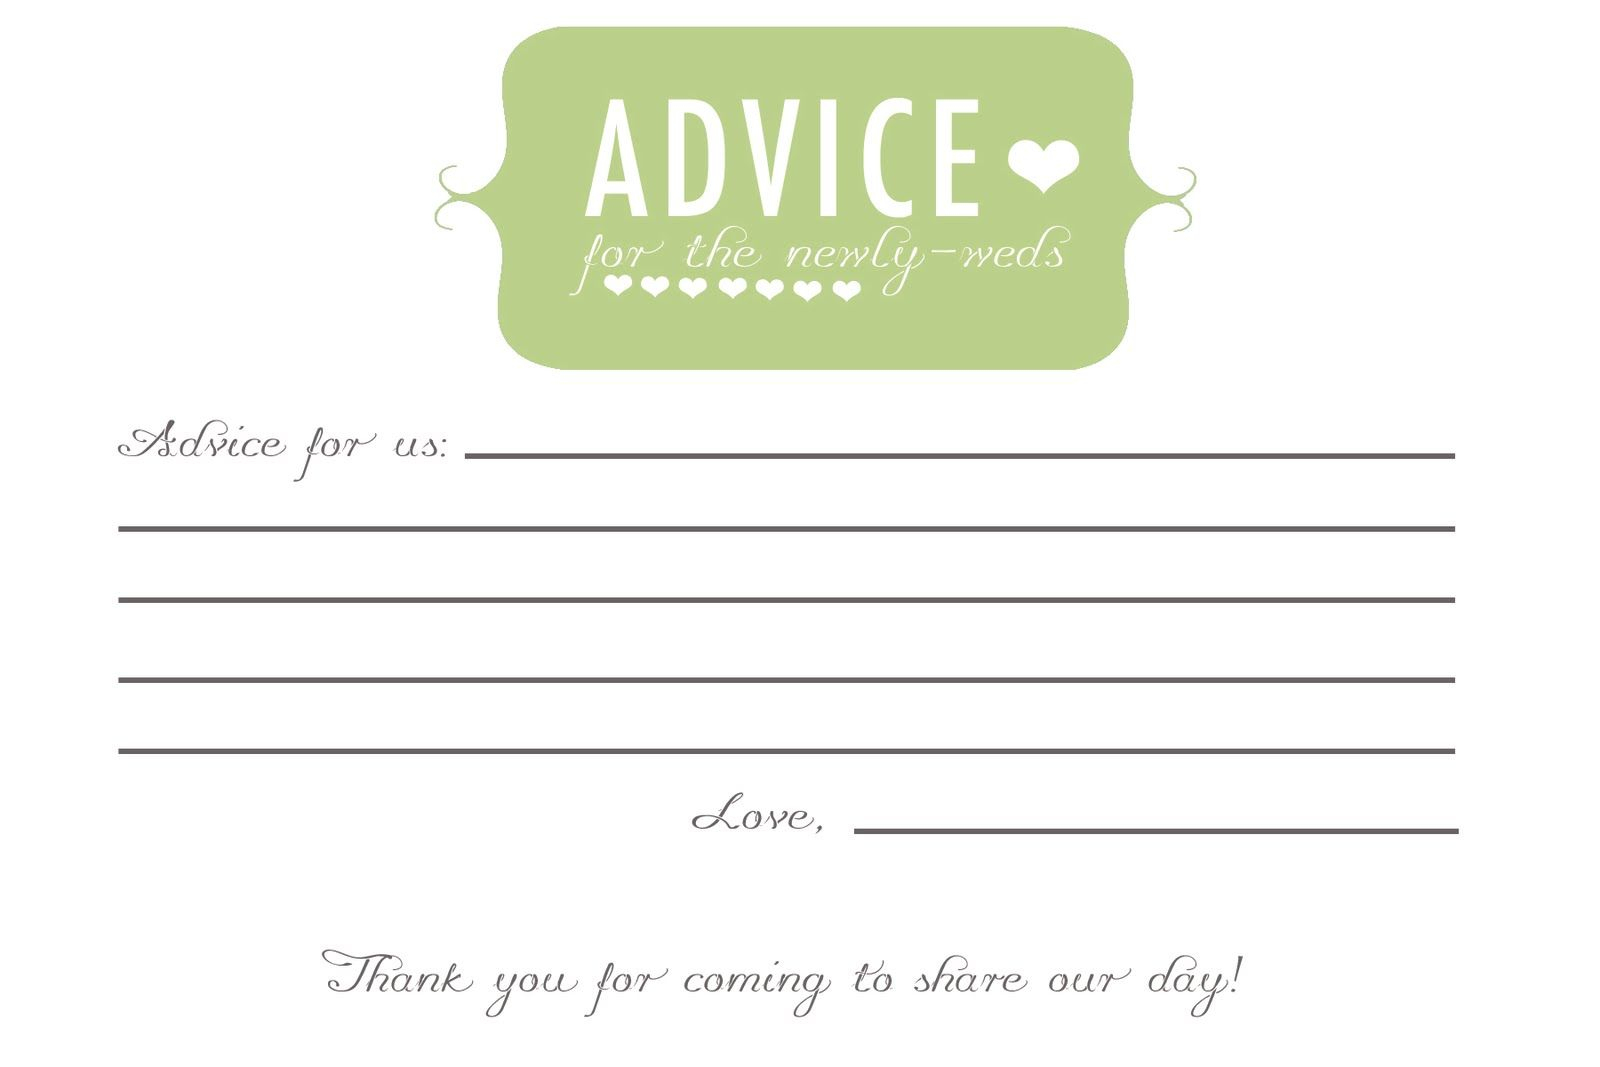 Free Printable Advice Cards For Mom - To -Be - Yahoo Image Search - Free Printable Bridal Shower Advice Cards